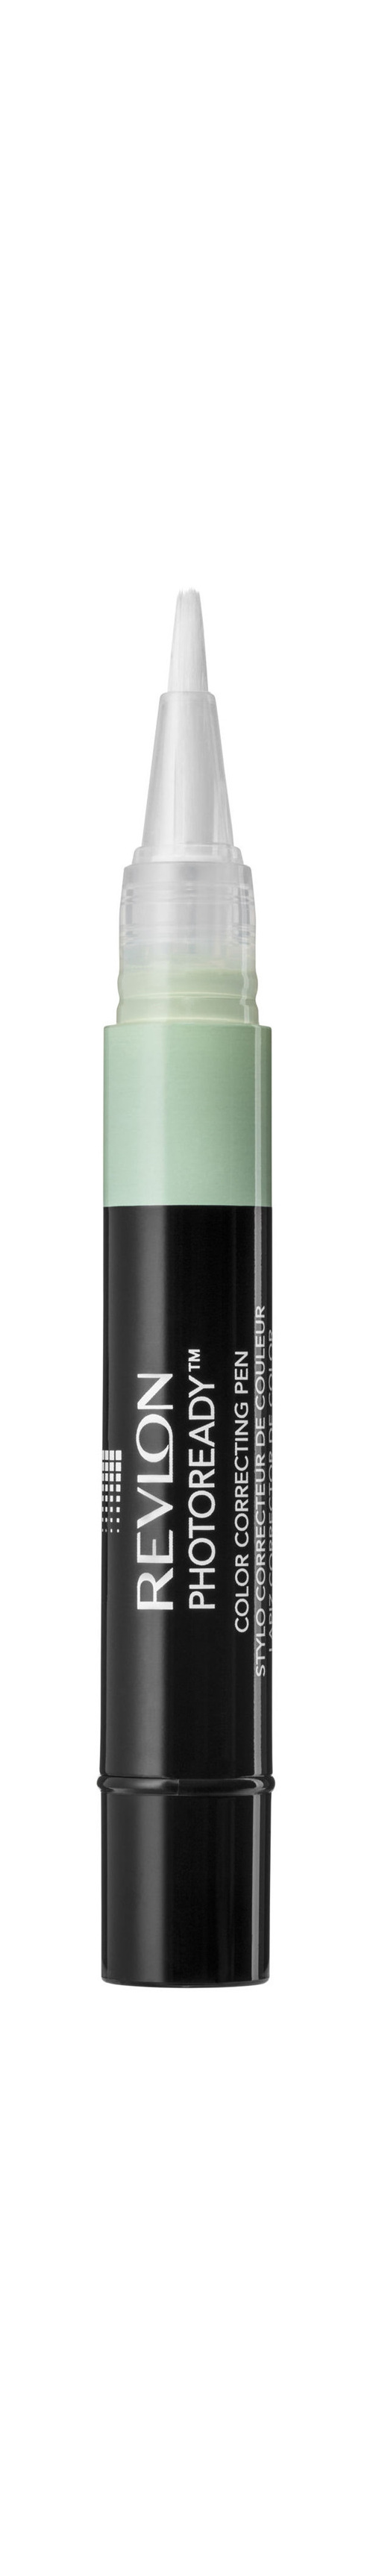 Revlon PhotoReady™ ColorCorrecting Pen - Redness